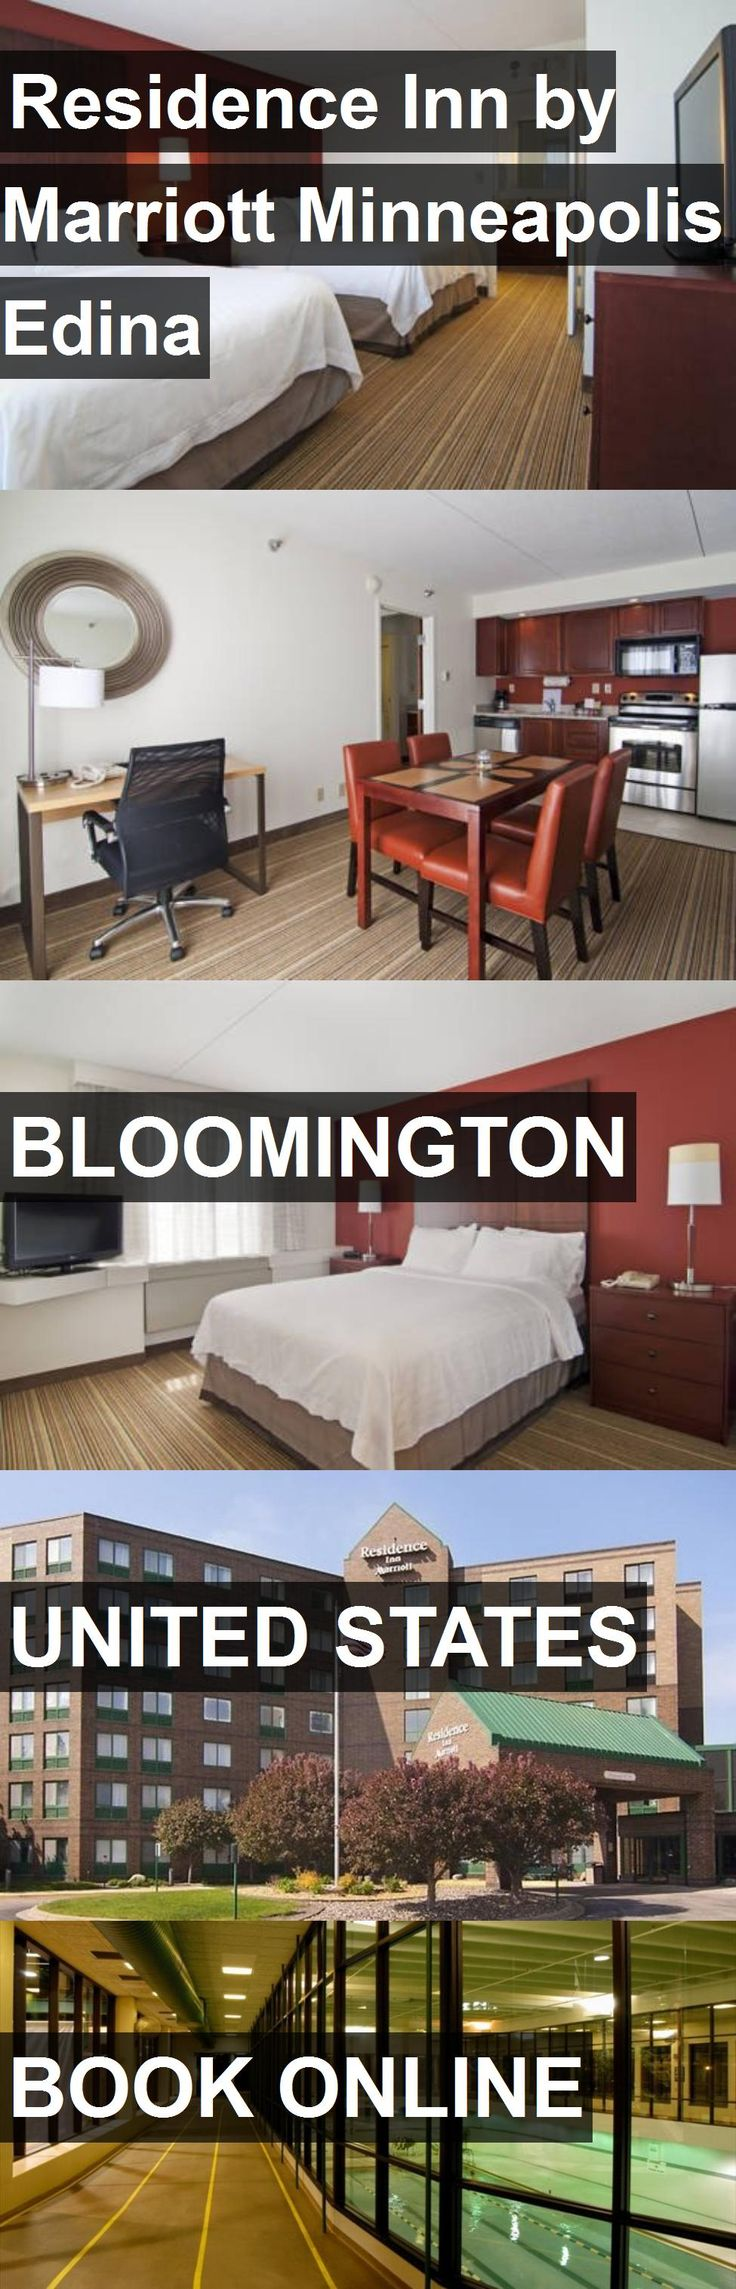 Hotel Residence Inn by Marriott Minneapolis Edina in Bloomington, United States. For more information, photos, reviews and best prices please follow the link. #UnitedStates #Bloomington #ResidenceInnbyMarriottMinneapolisEdina #hotel #travel #vacation